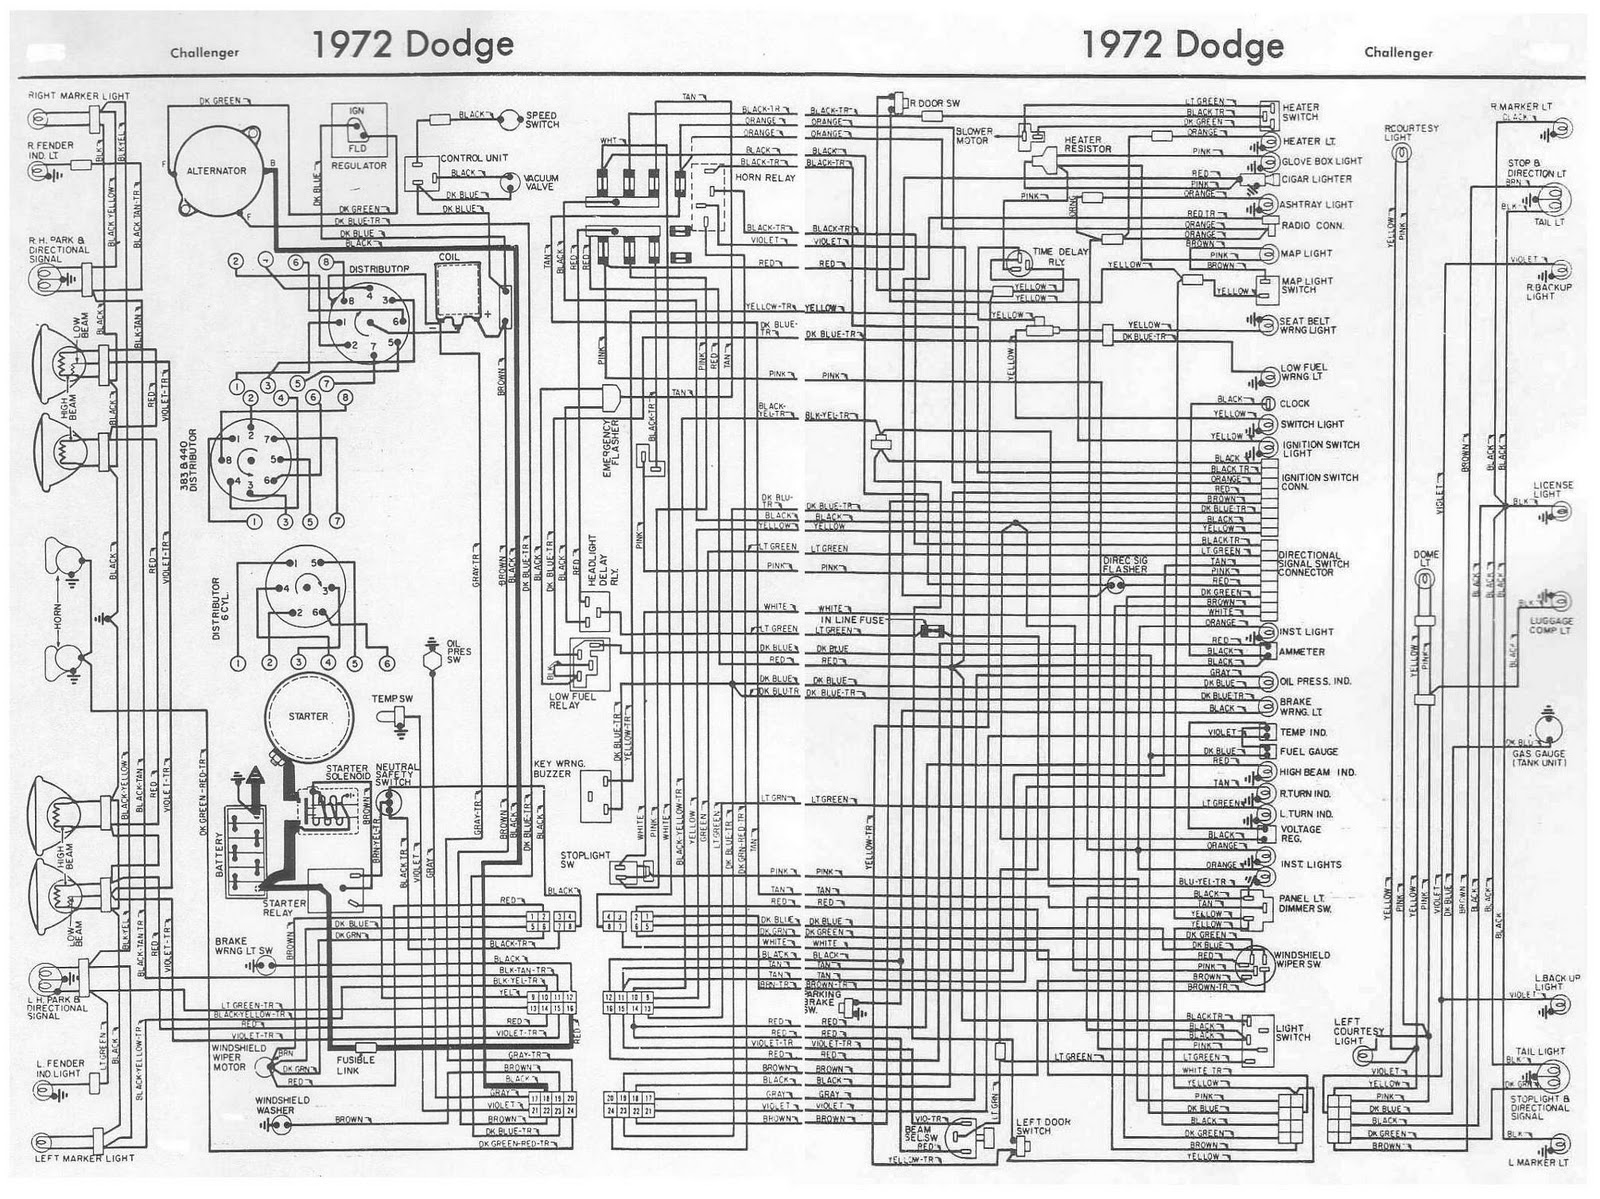 Dodge+Challenger+1972+Complete+Wiring+Diagram dodge challenger 1972 complete wiring diagram all about wiring wiring diagram for 1972 dodge charger at eliteediting.co